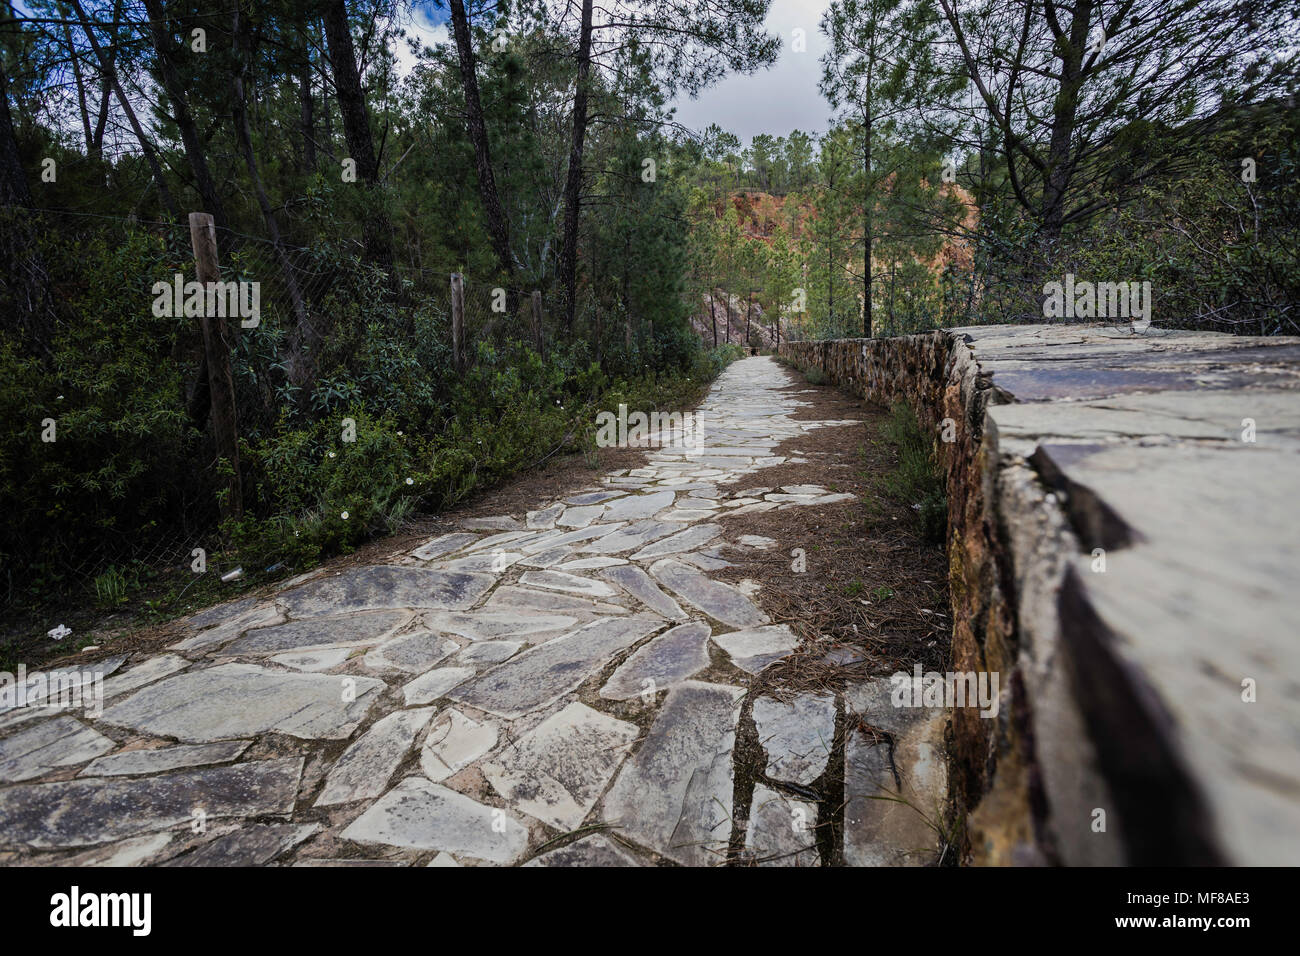 Stone path in the forest - Stock Image